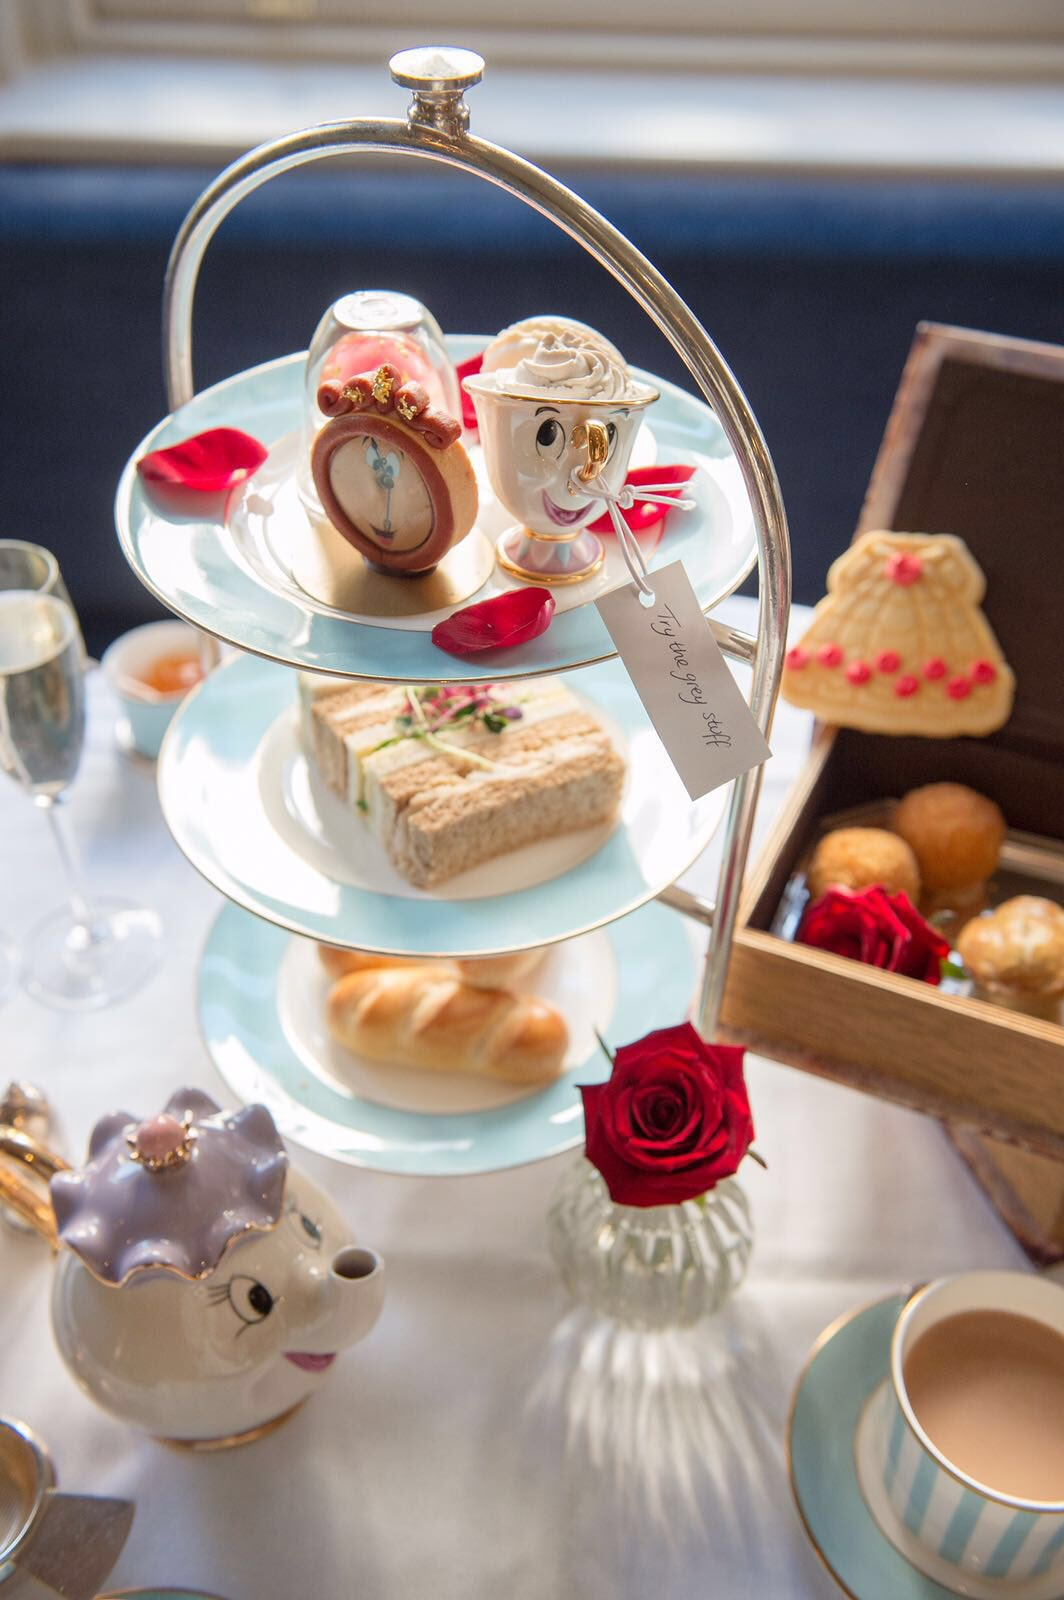 web-tale-as-old-as-time-afternoon-tea-3-townhousekensington-com